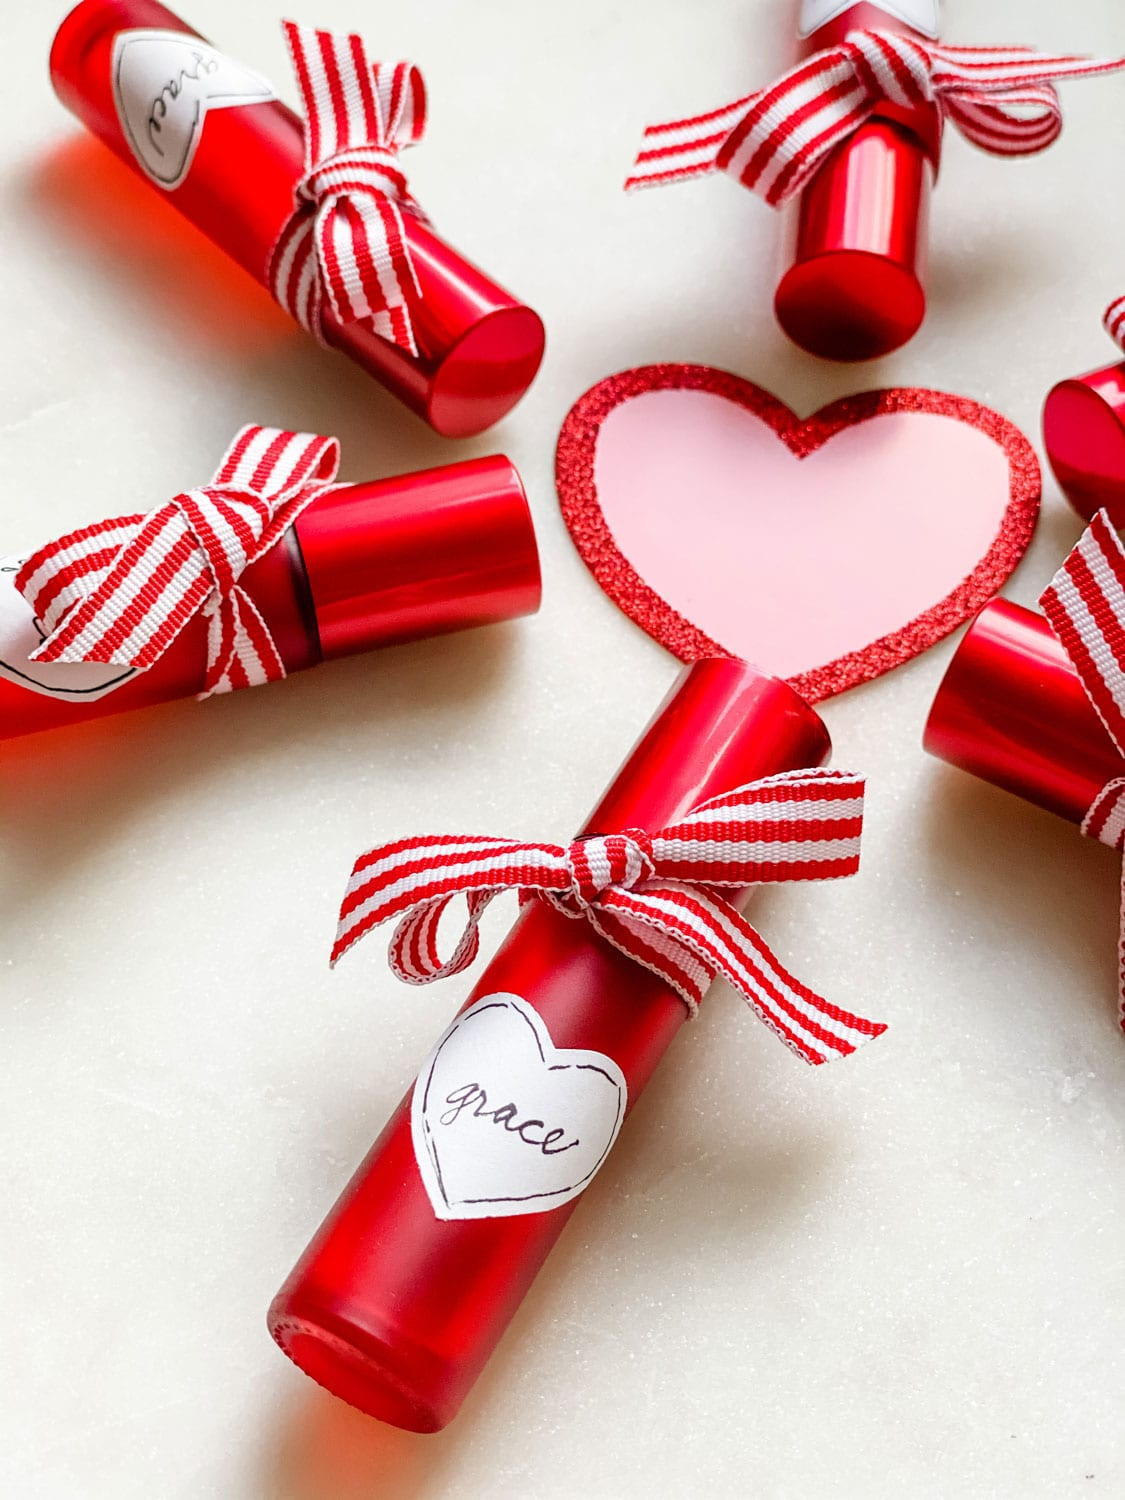 Red roller bottles with ribbon and heart shaped label around a pink/red glitter heart